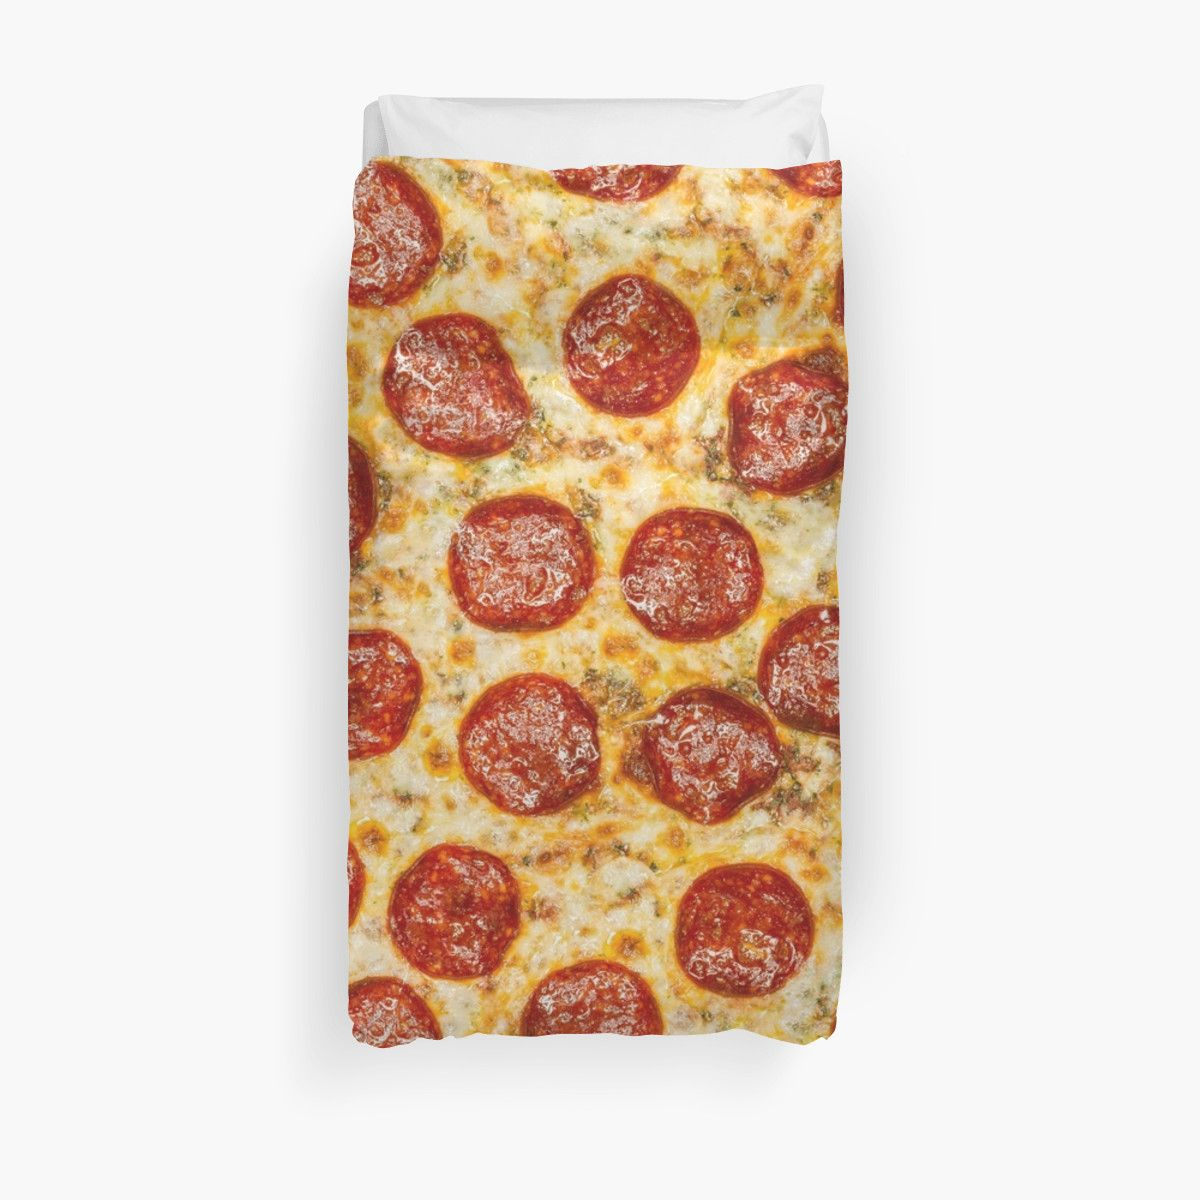 Pepperoni Pizza Duvet Cover / Comforter. Now I want to get sheet set and dust ruffles like crust!